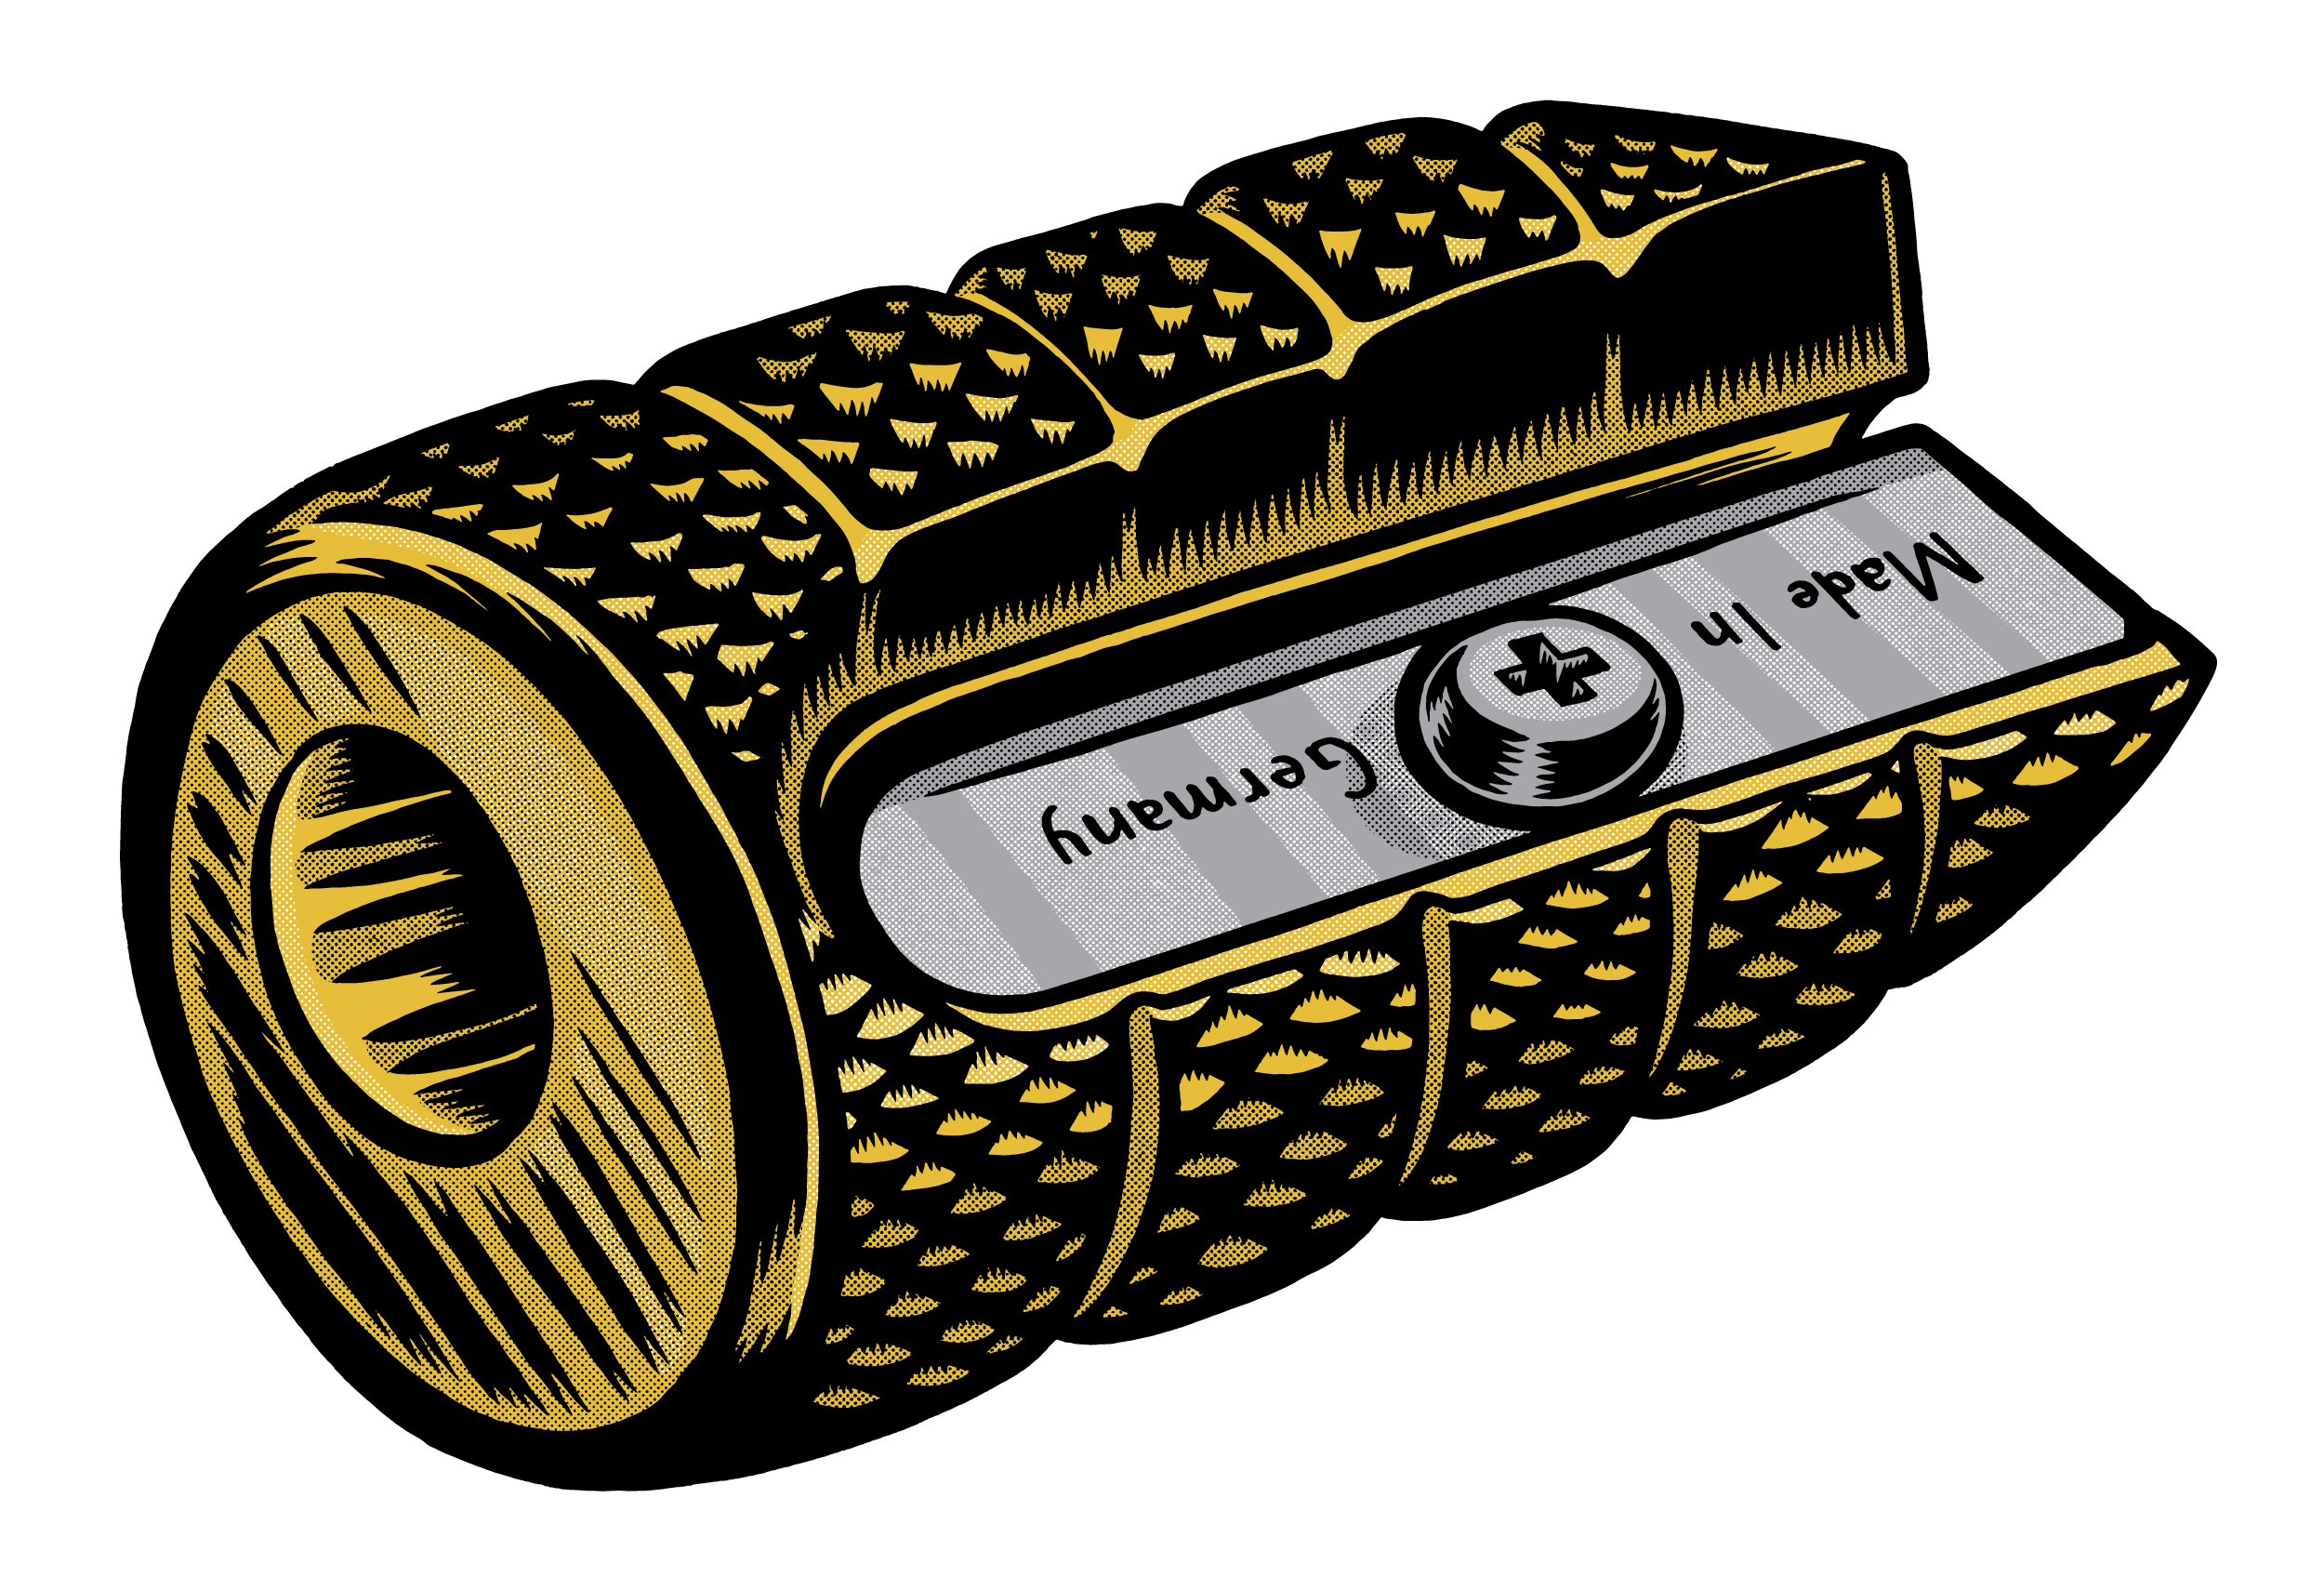 PencilSharpener_No6_13x19_Color.png